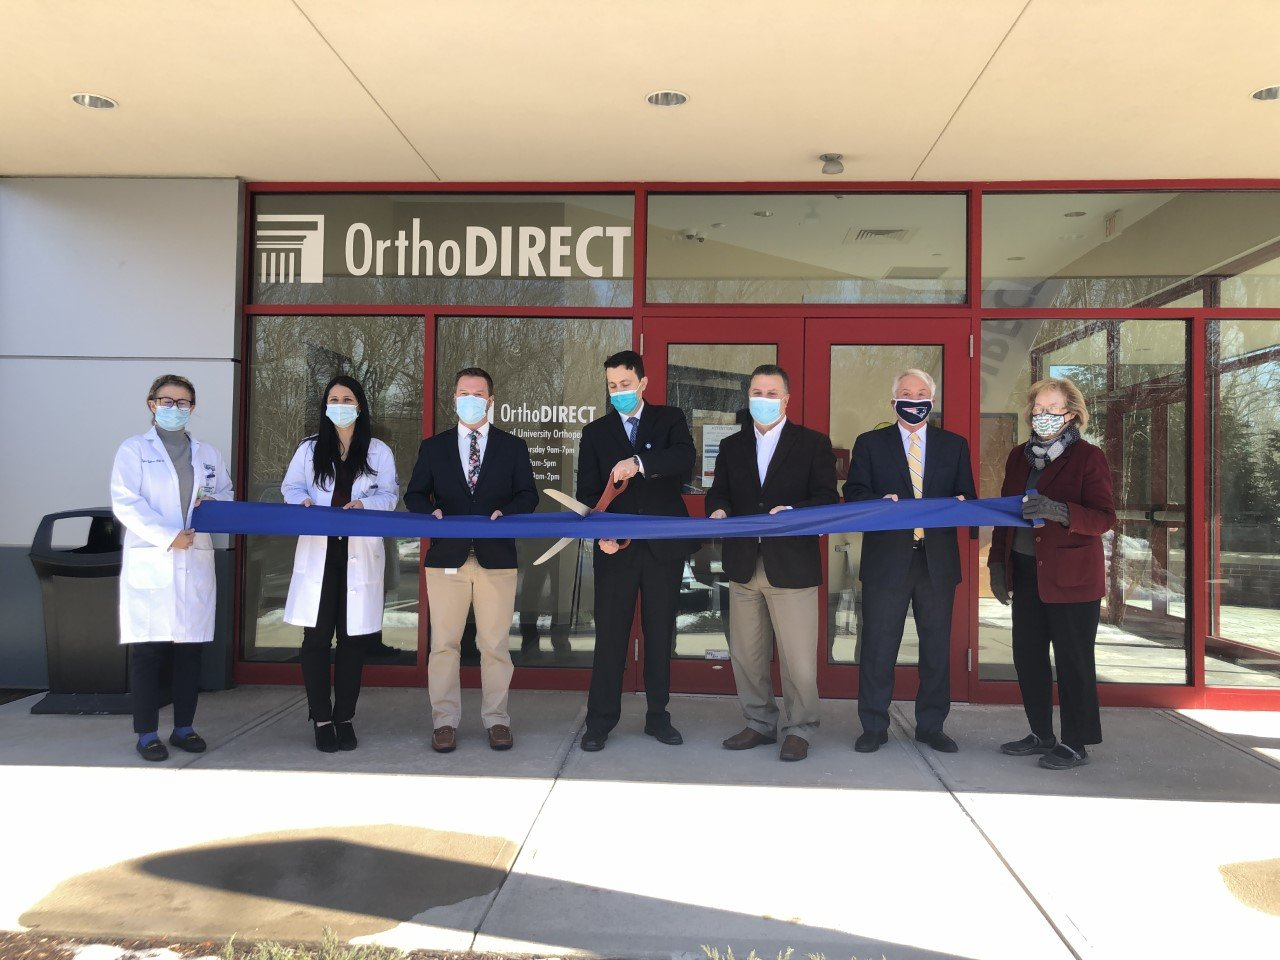 University Orthopedics Celebrates OrthoDirect Location in East Greenwich with Ribbon Cutting